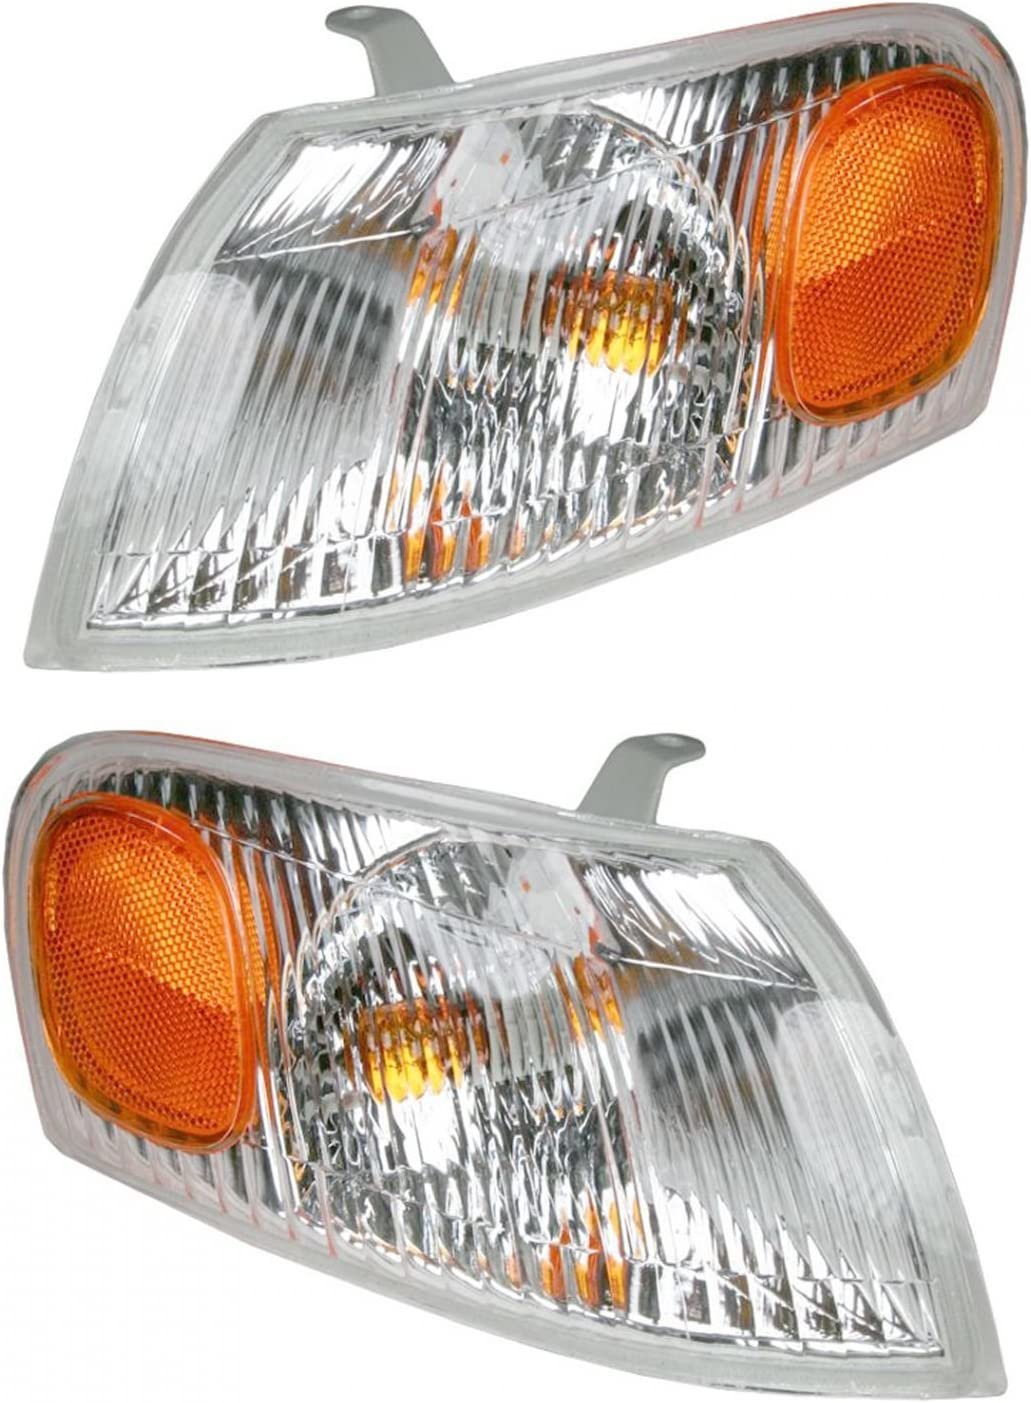 Corner Parking Side Marker Turn Signal Lights Pair Set for 98-00 Toyota Corolla